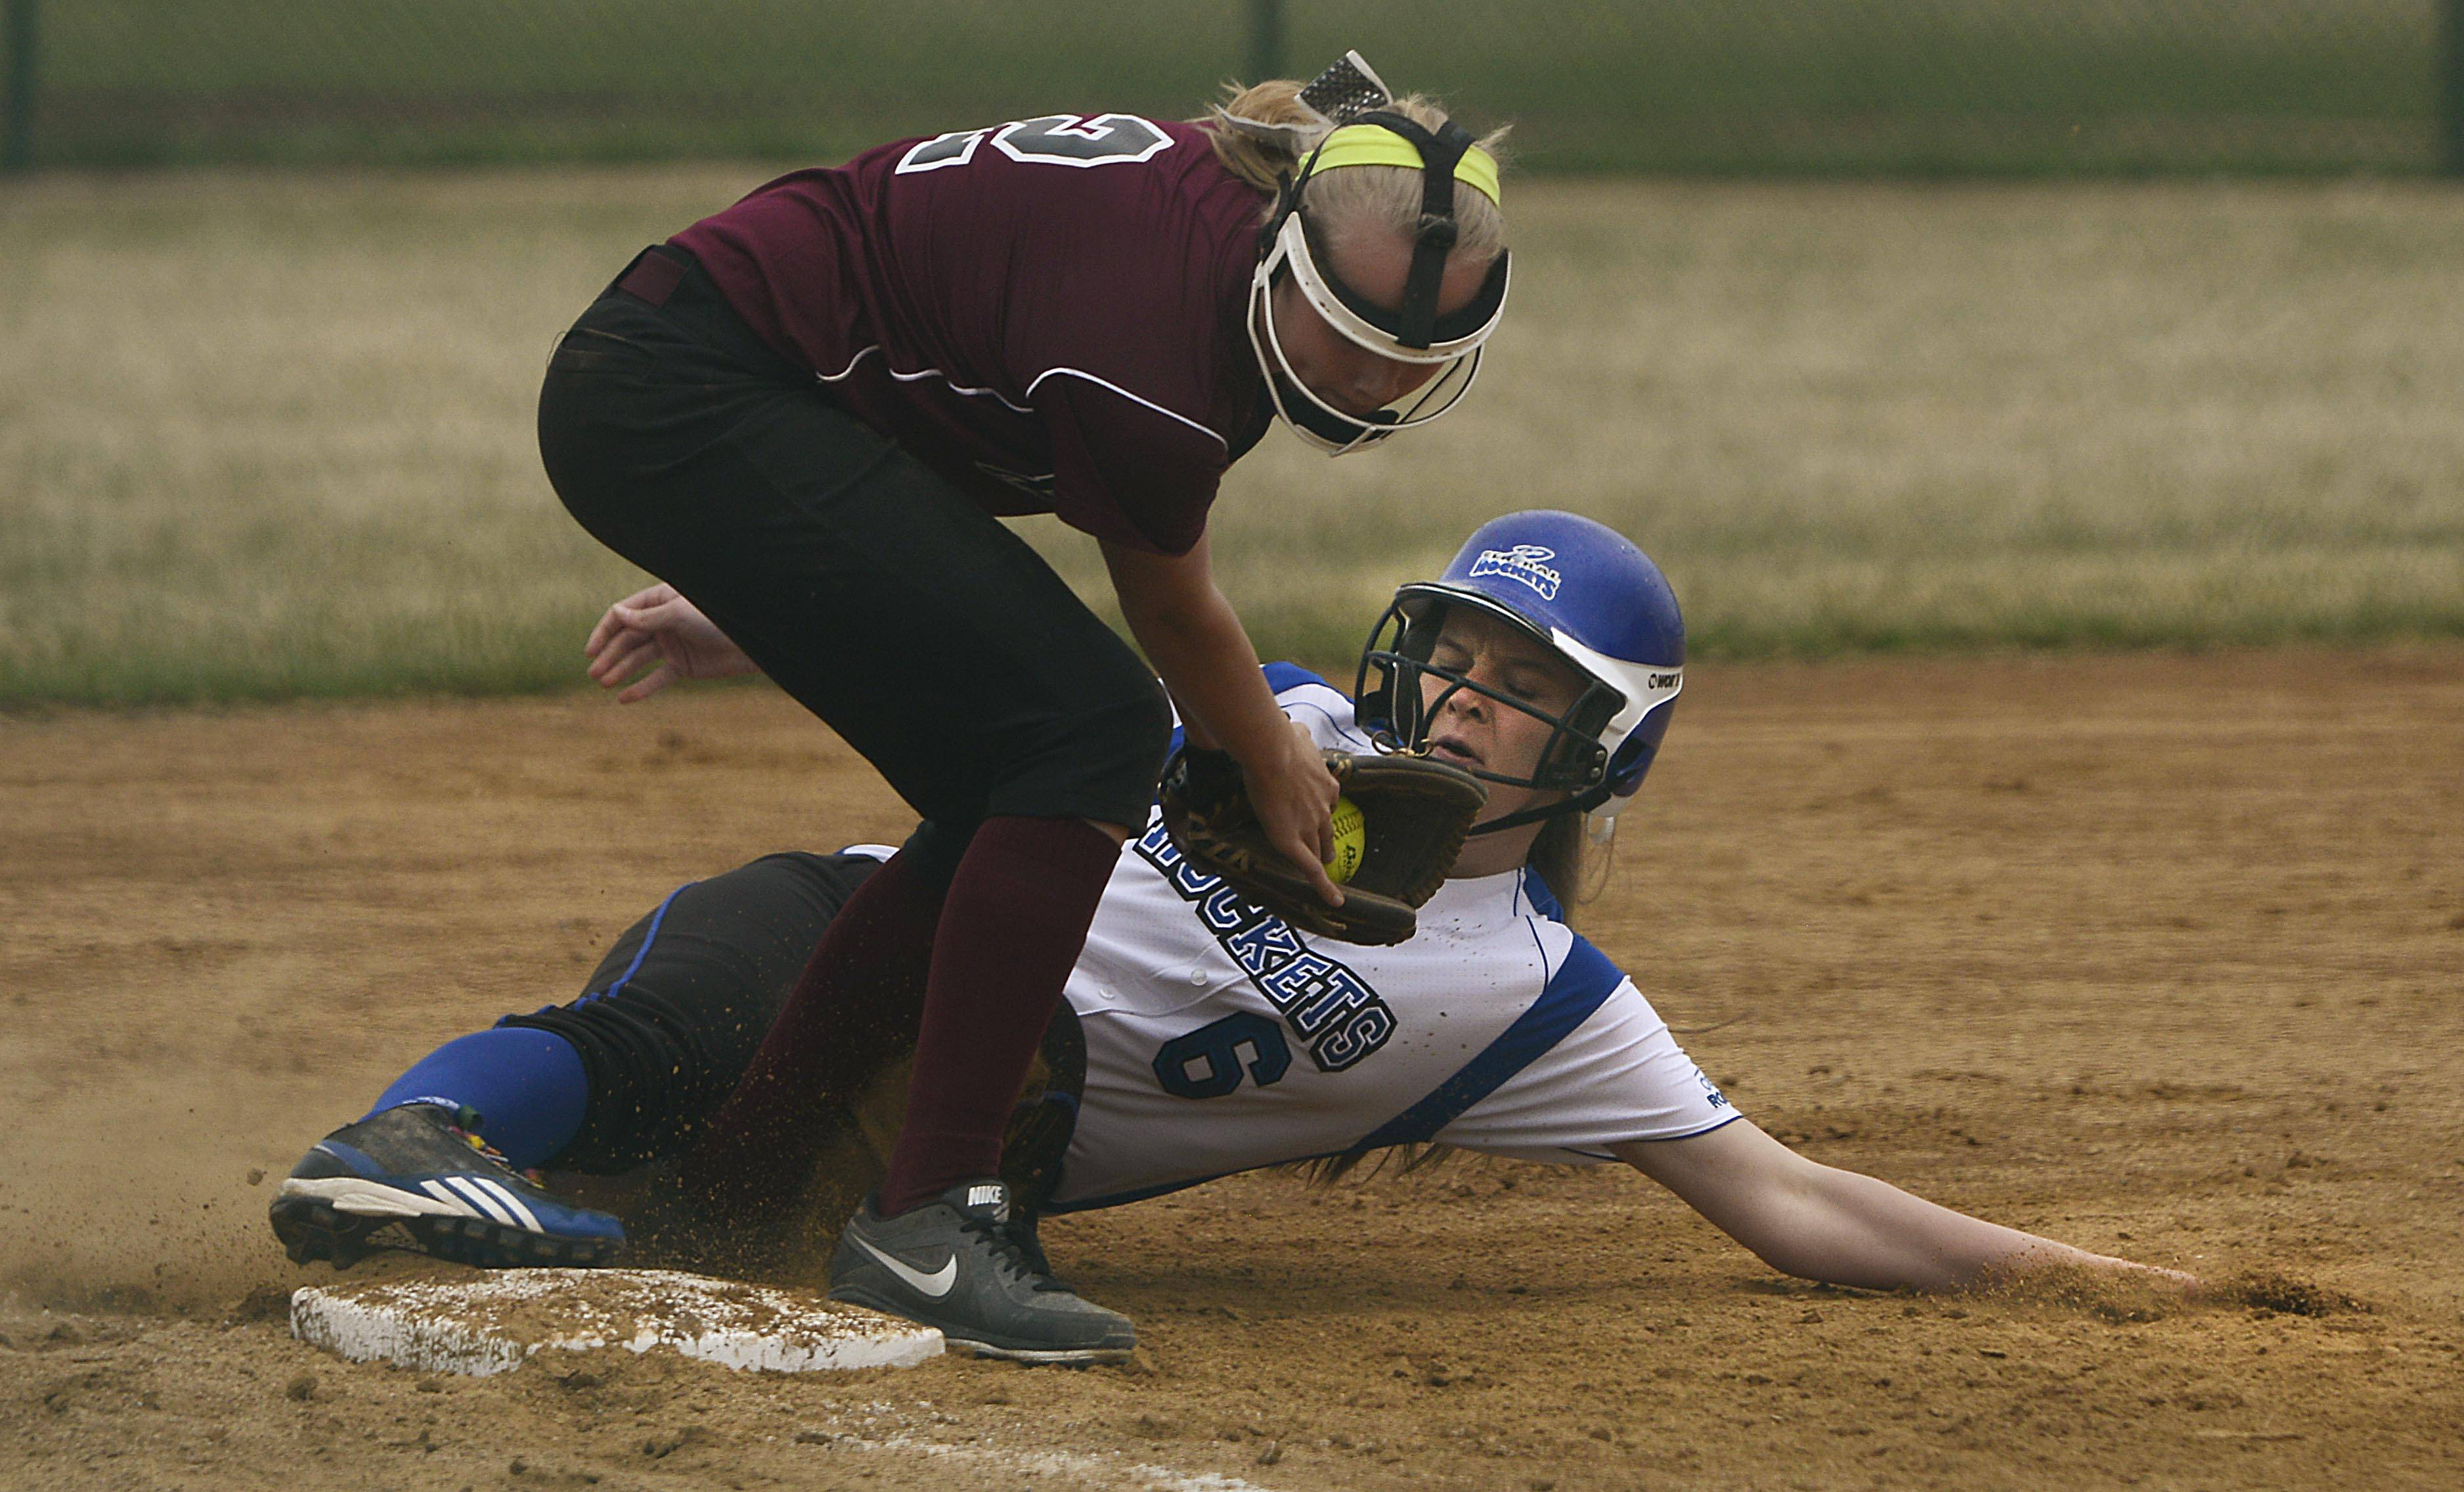 Burlington Central's Lindsey Strohmaier bends her leg around Marengo's Leah Secor to reach third base safely Monday on a hit by teammate Tori Harvey in the sixth inning in Marengo. Both players were stranded on base after reaching with no outs.